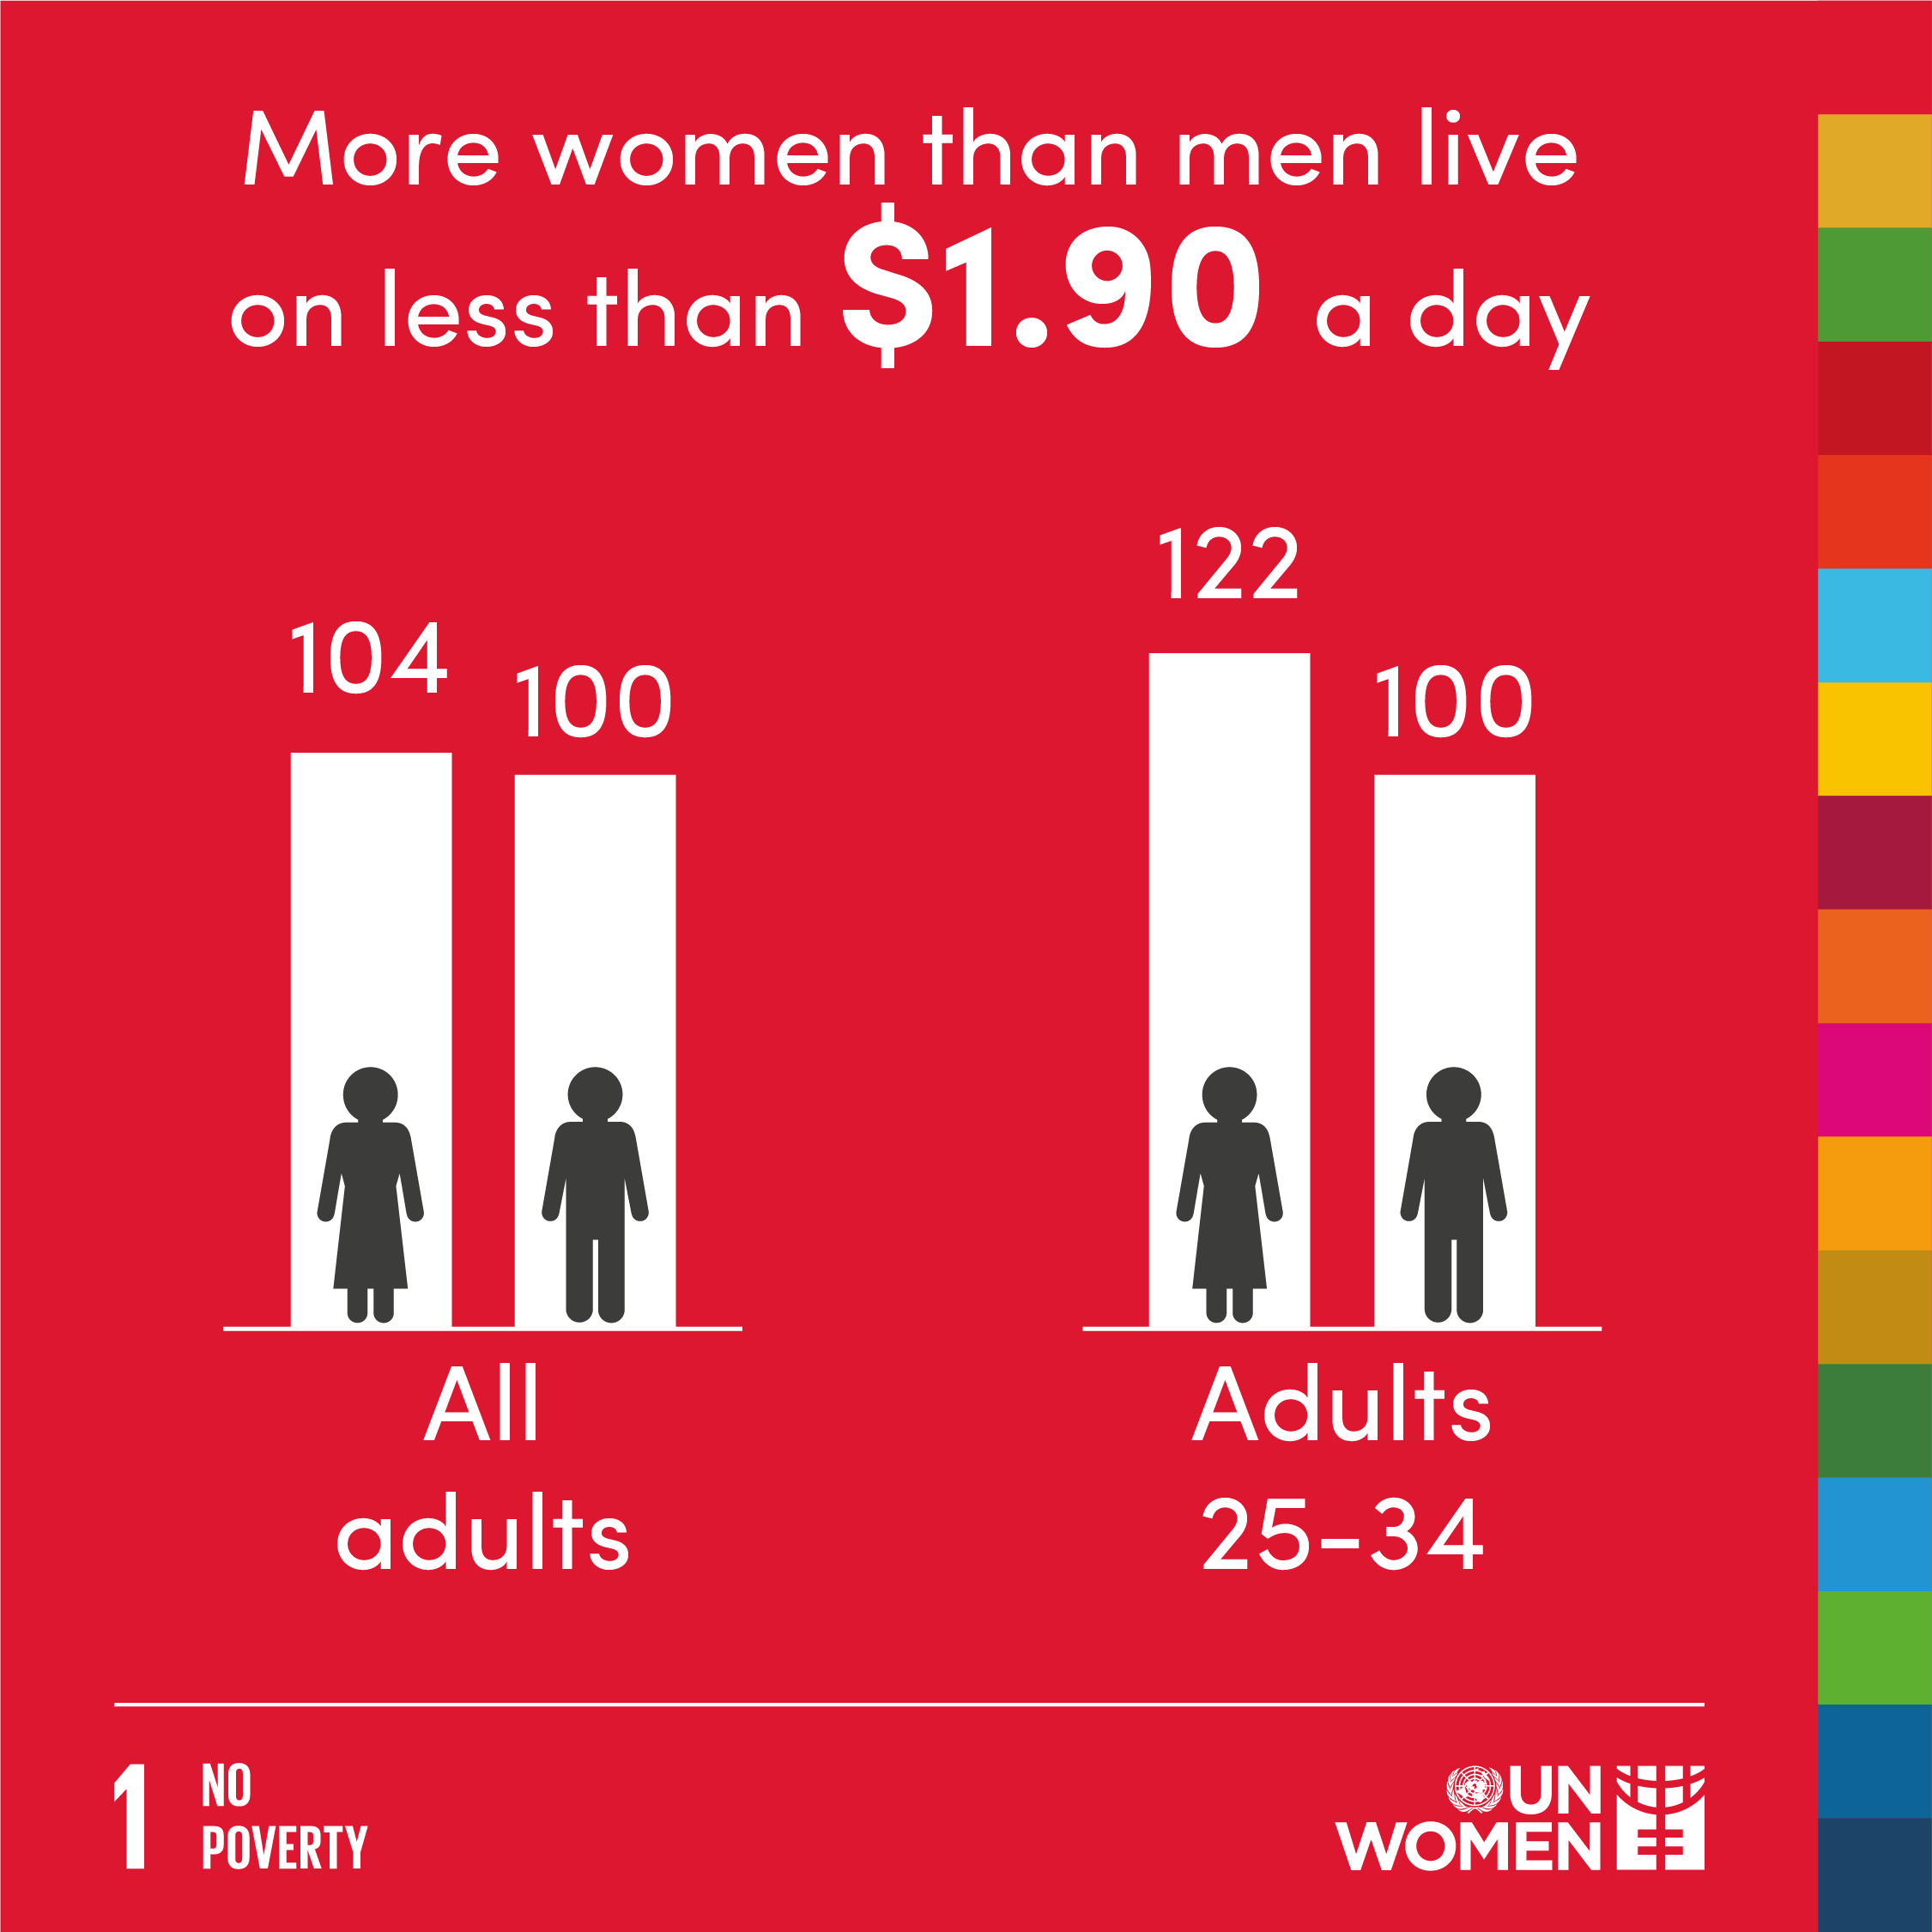 More women than men live on less than $1.9- a day.